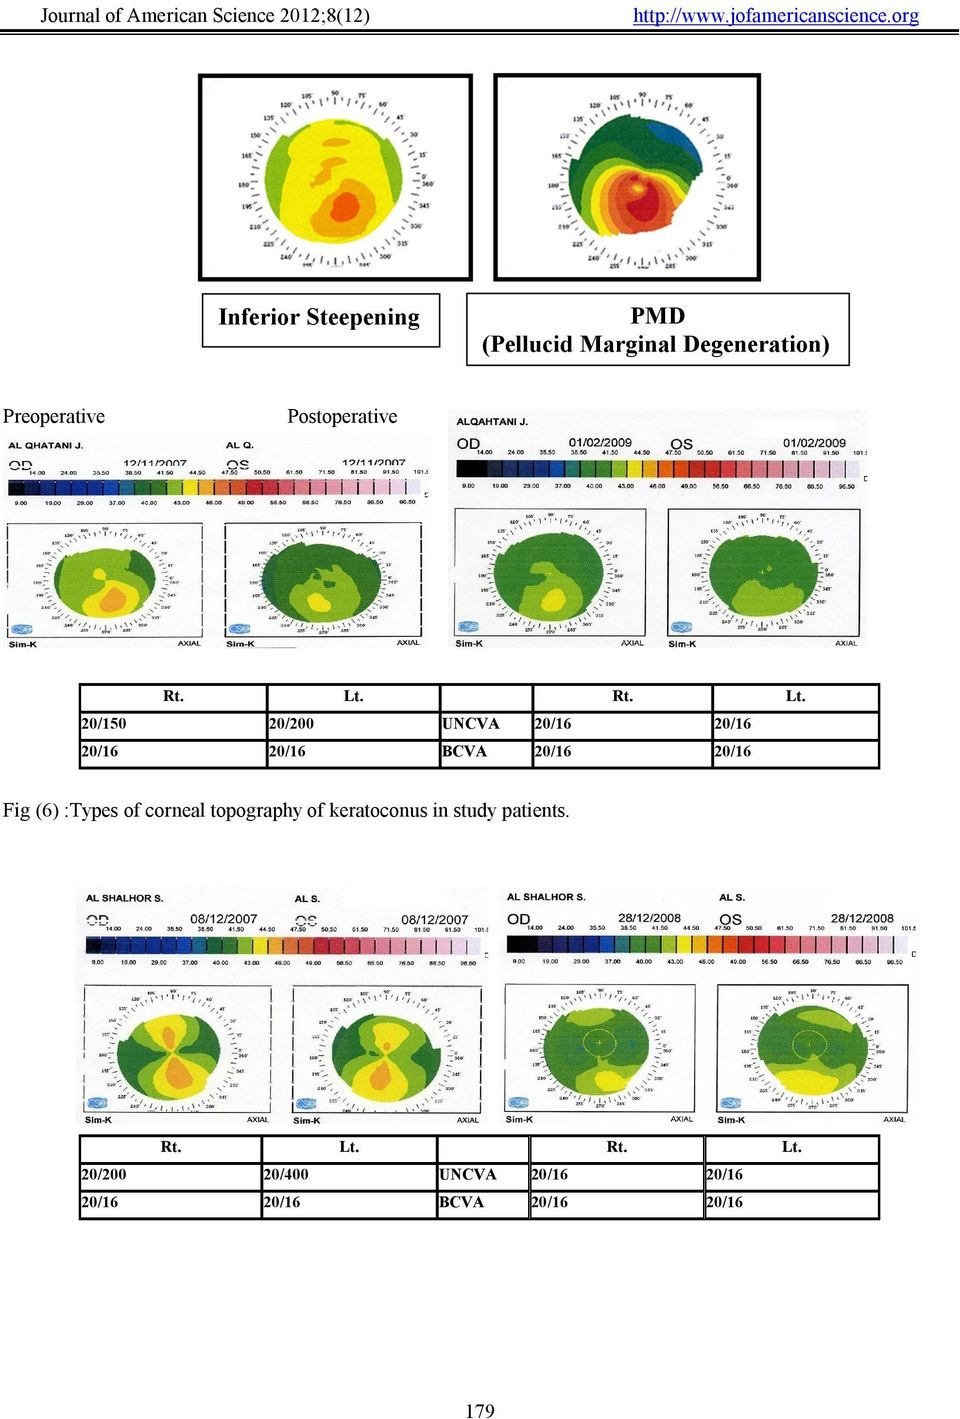 20/16 Fig (6) :Types of corneal topography of keratoconus in study